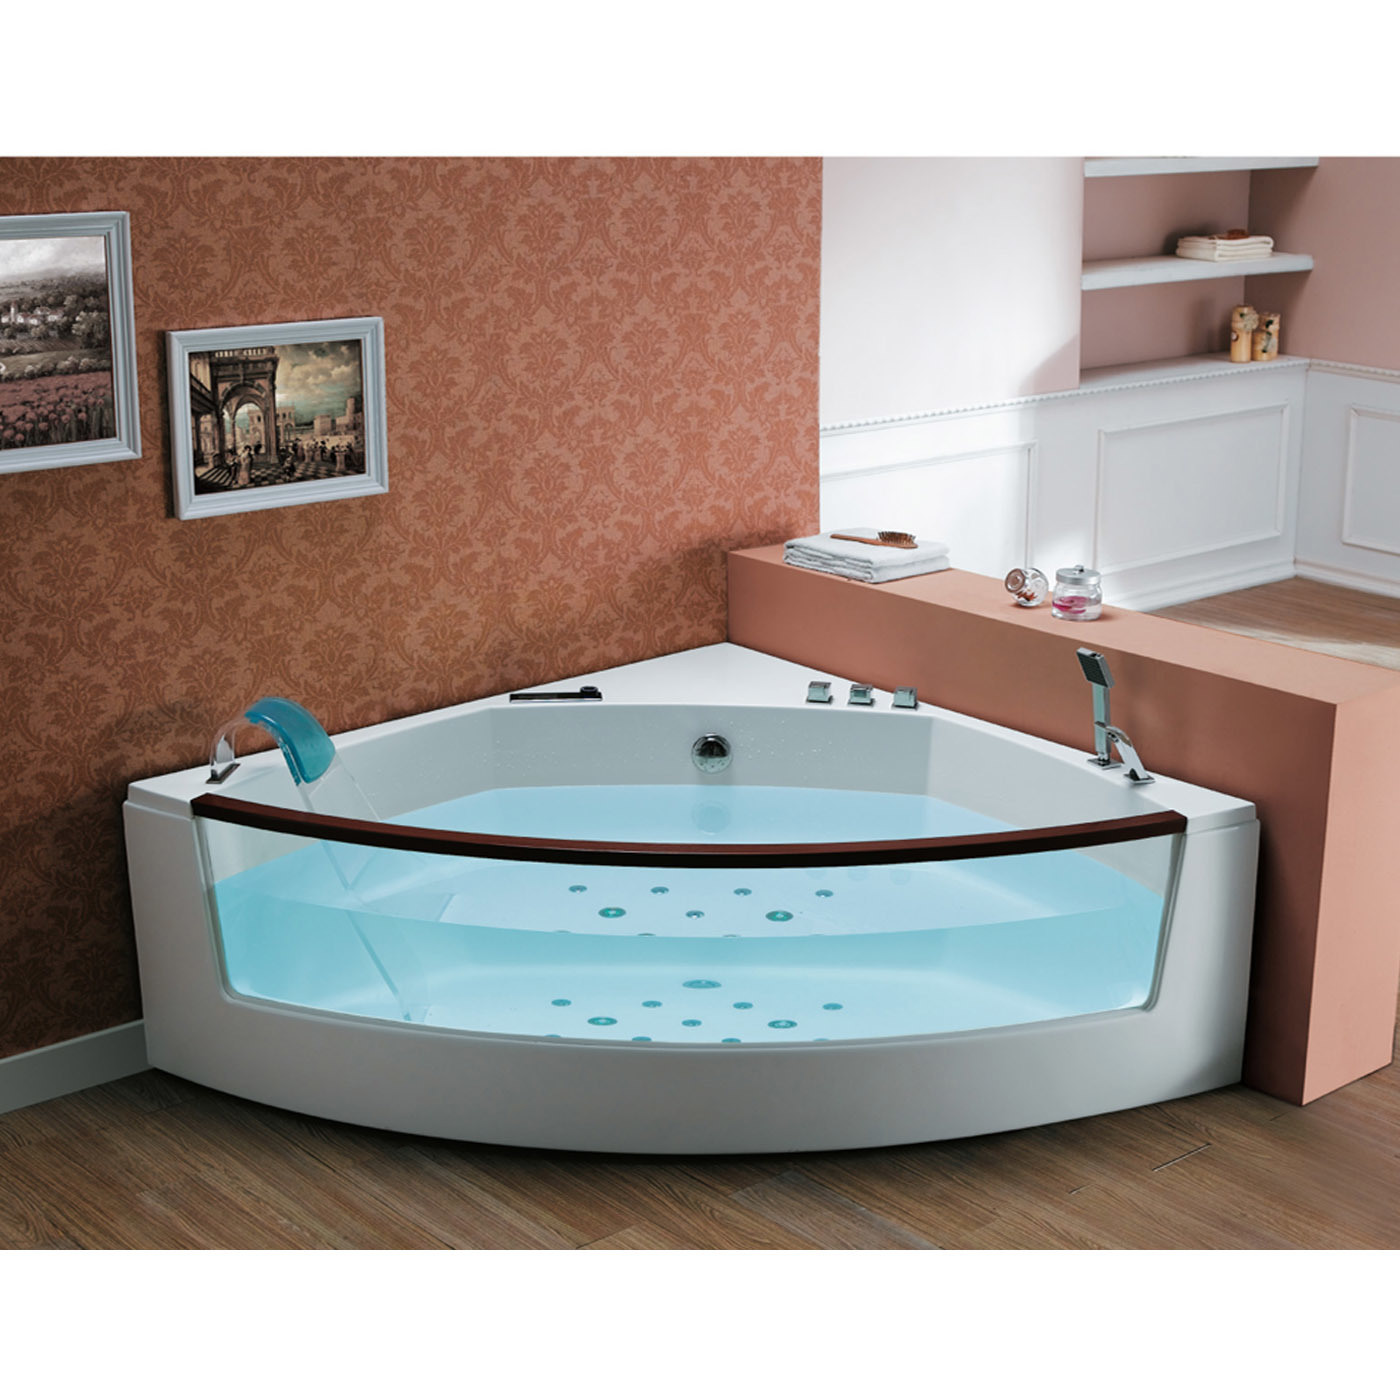 China Luxury Massge Bathtub CE Certification Photos Pictures Made In